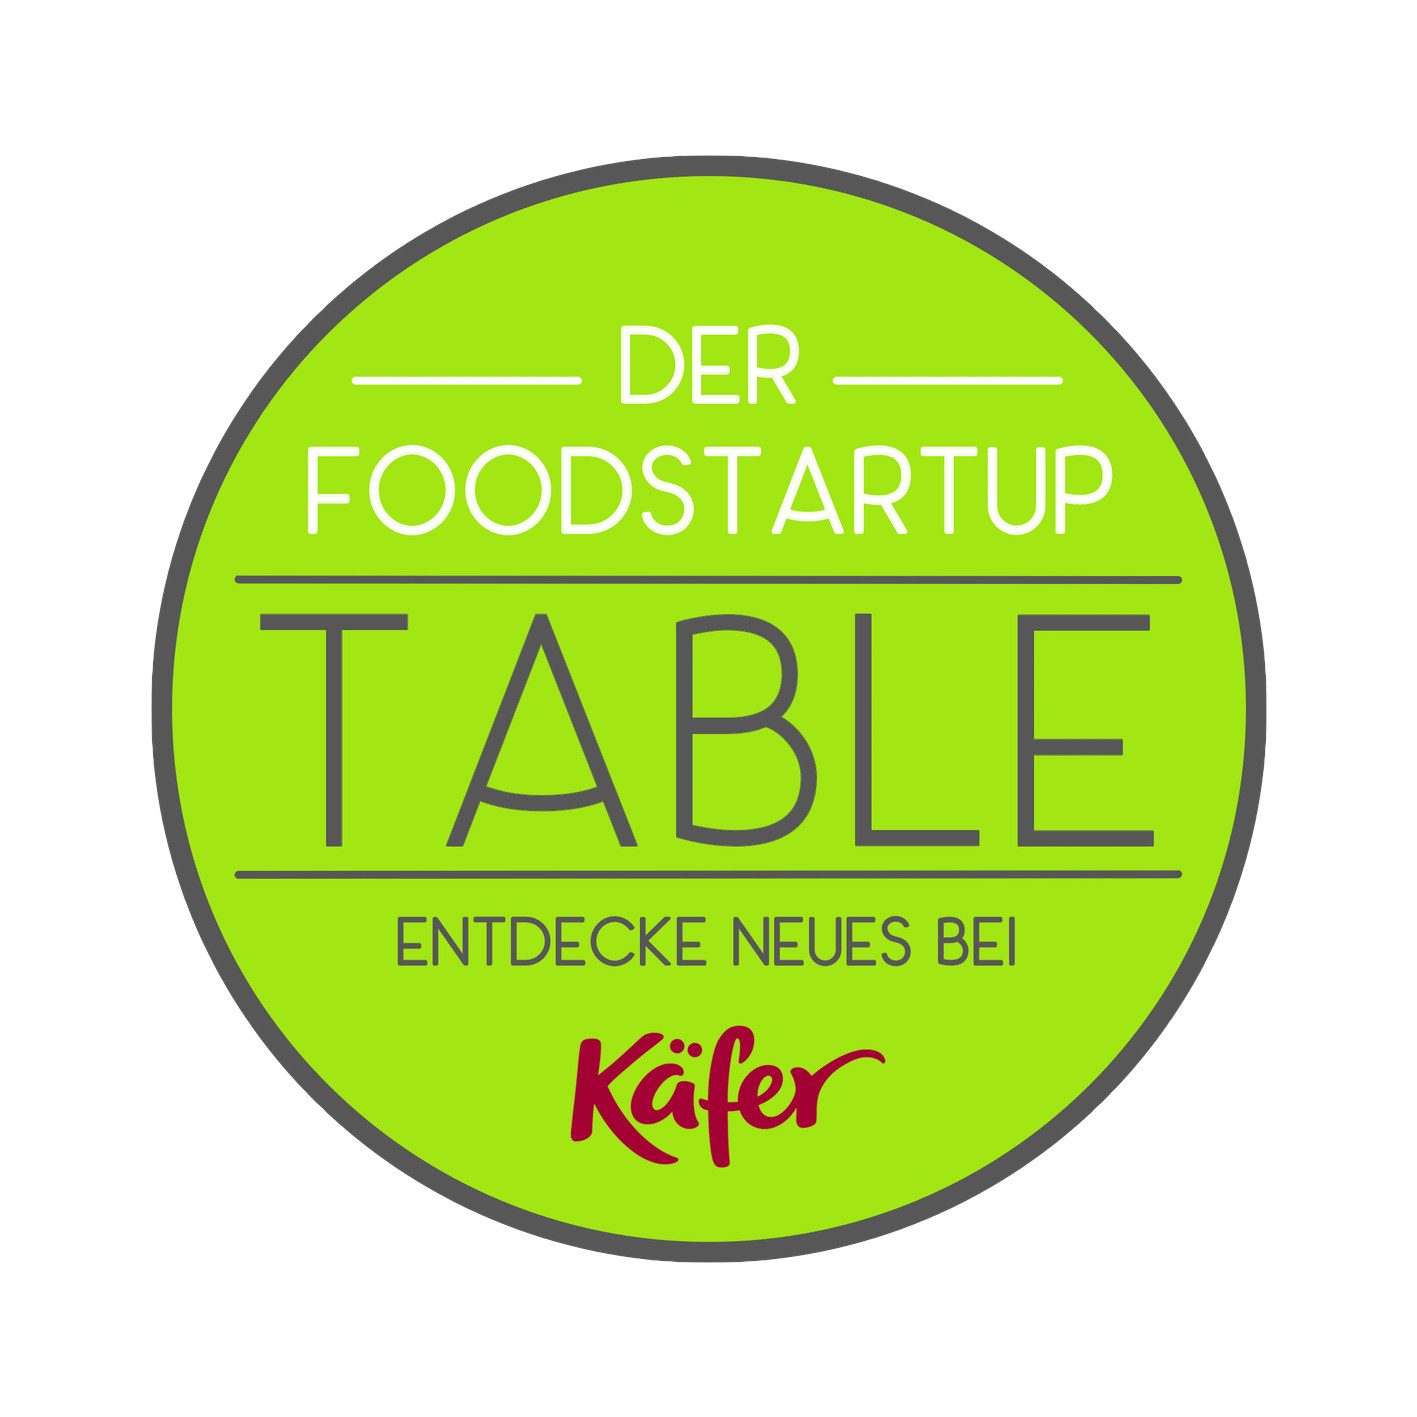 Gründer: Der Foodstartup-Table by Feinkost Käfer